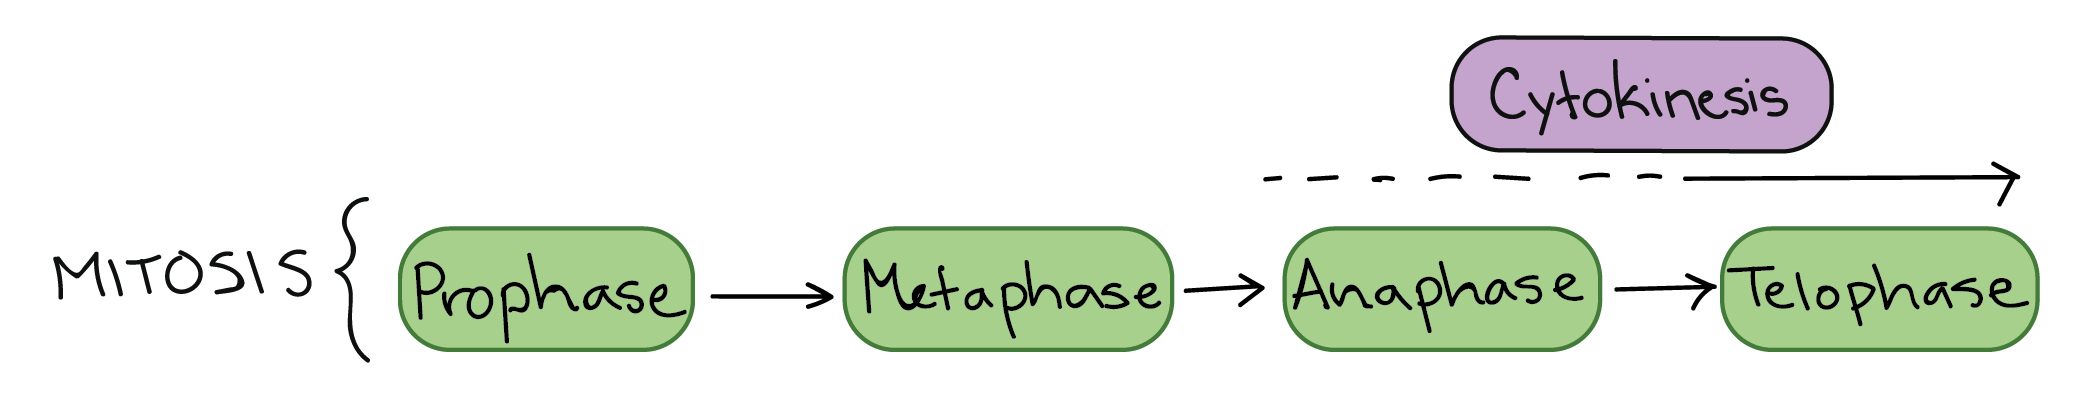 Phases of mitosis the cell cycle cell division article stages of mitosis prophase metaphase anaphase telophase cytokinesis typically overlaps with anaphase andor telophase pooptronica Gallery